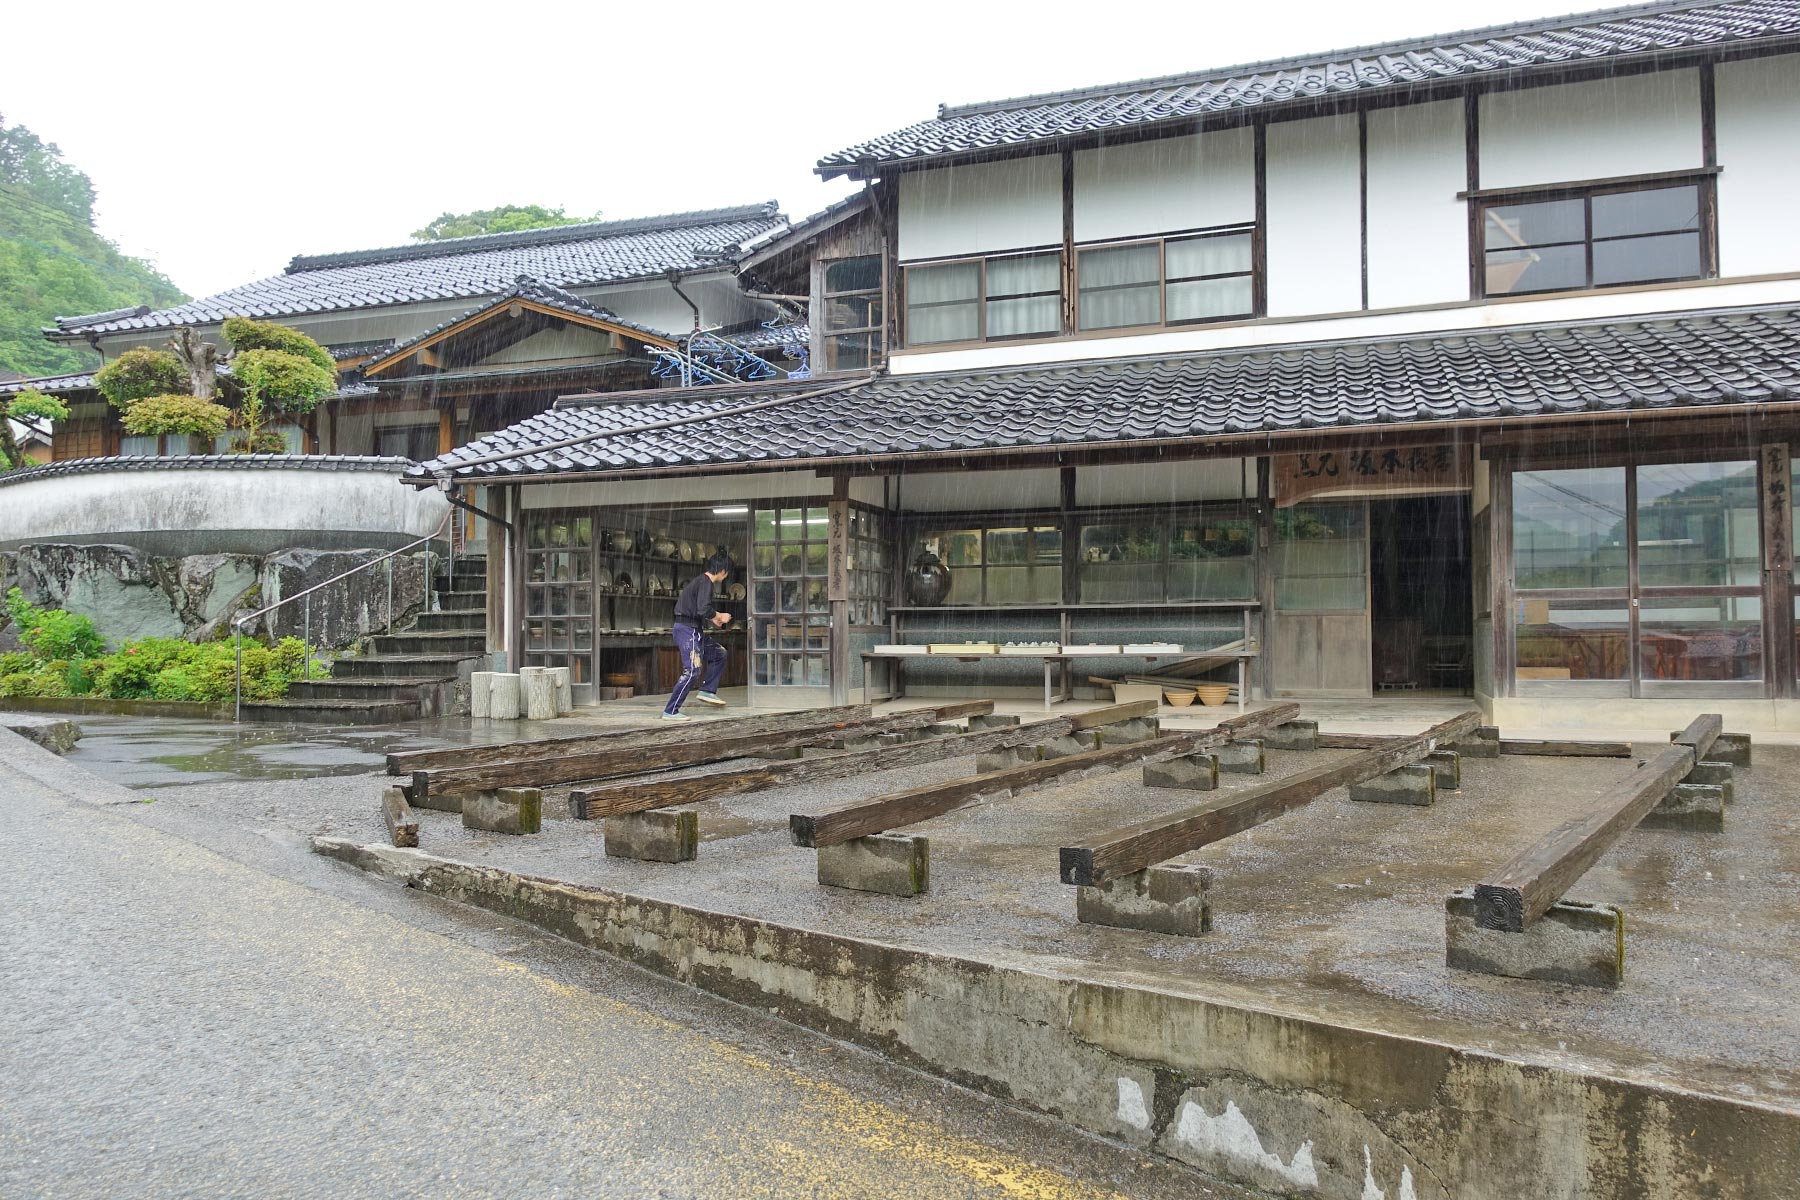 The front of the Sakamoto Yoshitaka kiln in Onta during a heavy downpour. On a sunny day, the pots will be drying out in the front.